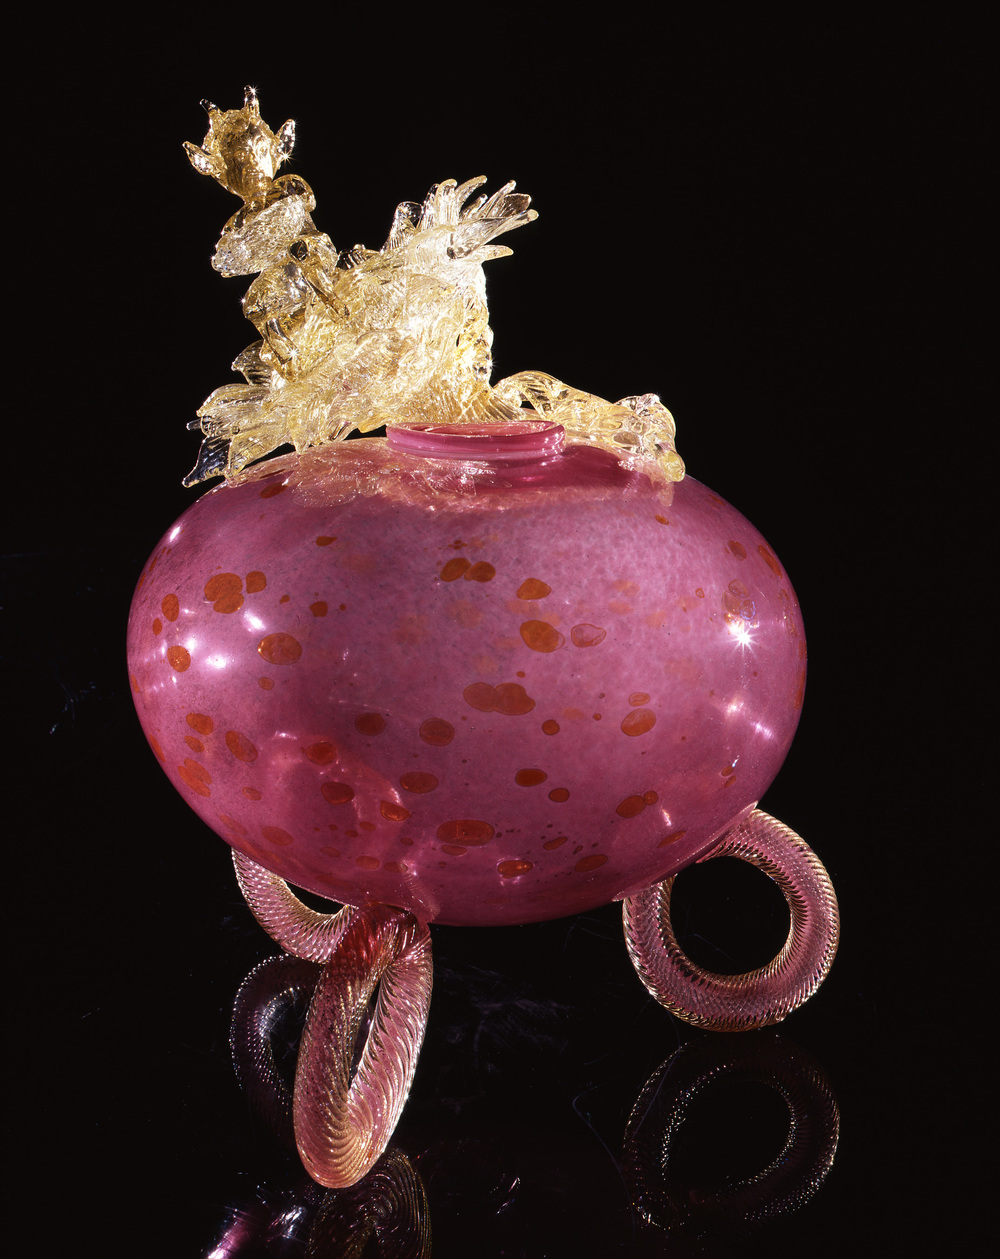 Dale Chihuly,  Spotted Raspberry Putti Venetian with Devil on Sunflower  (1994, glass, 19 x 16 x 14 inches)